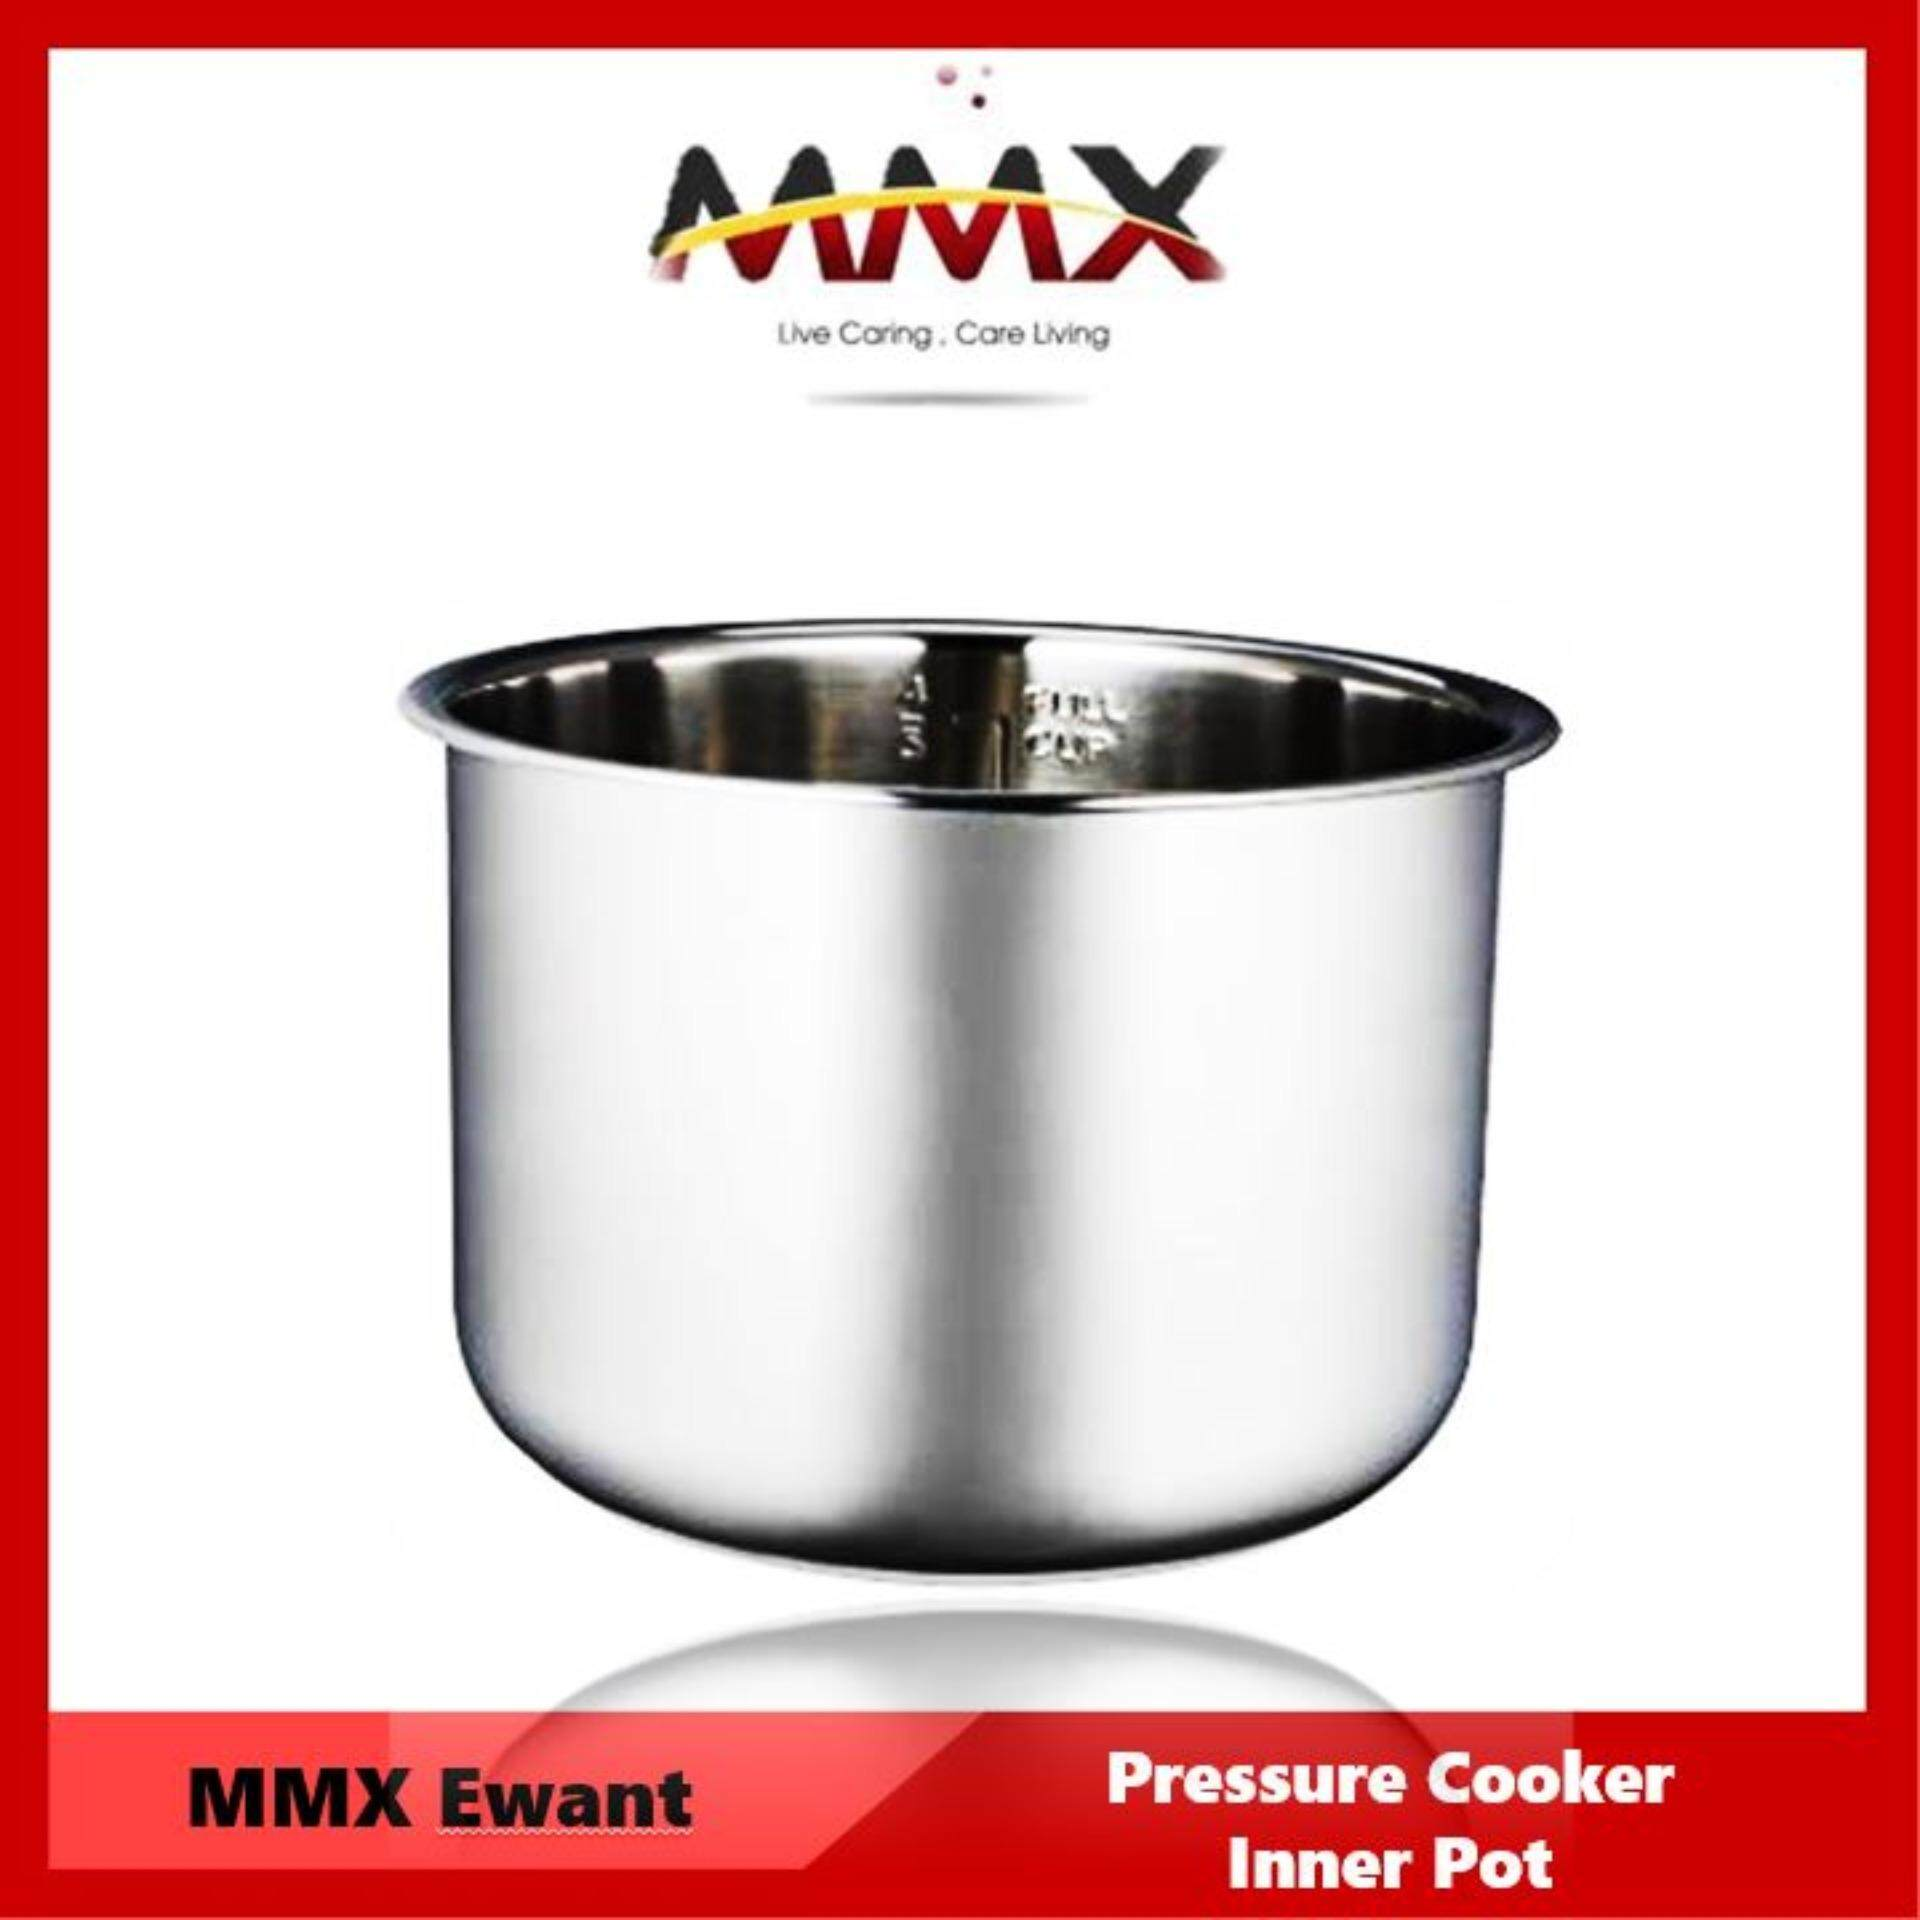 MMX - Ewant 6L pressure cooker Inner Pot - Stainless Steel (Replacement)